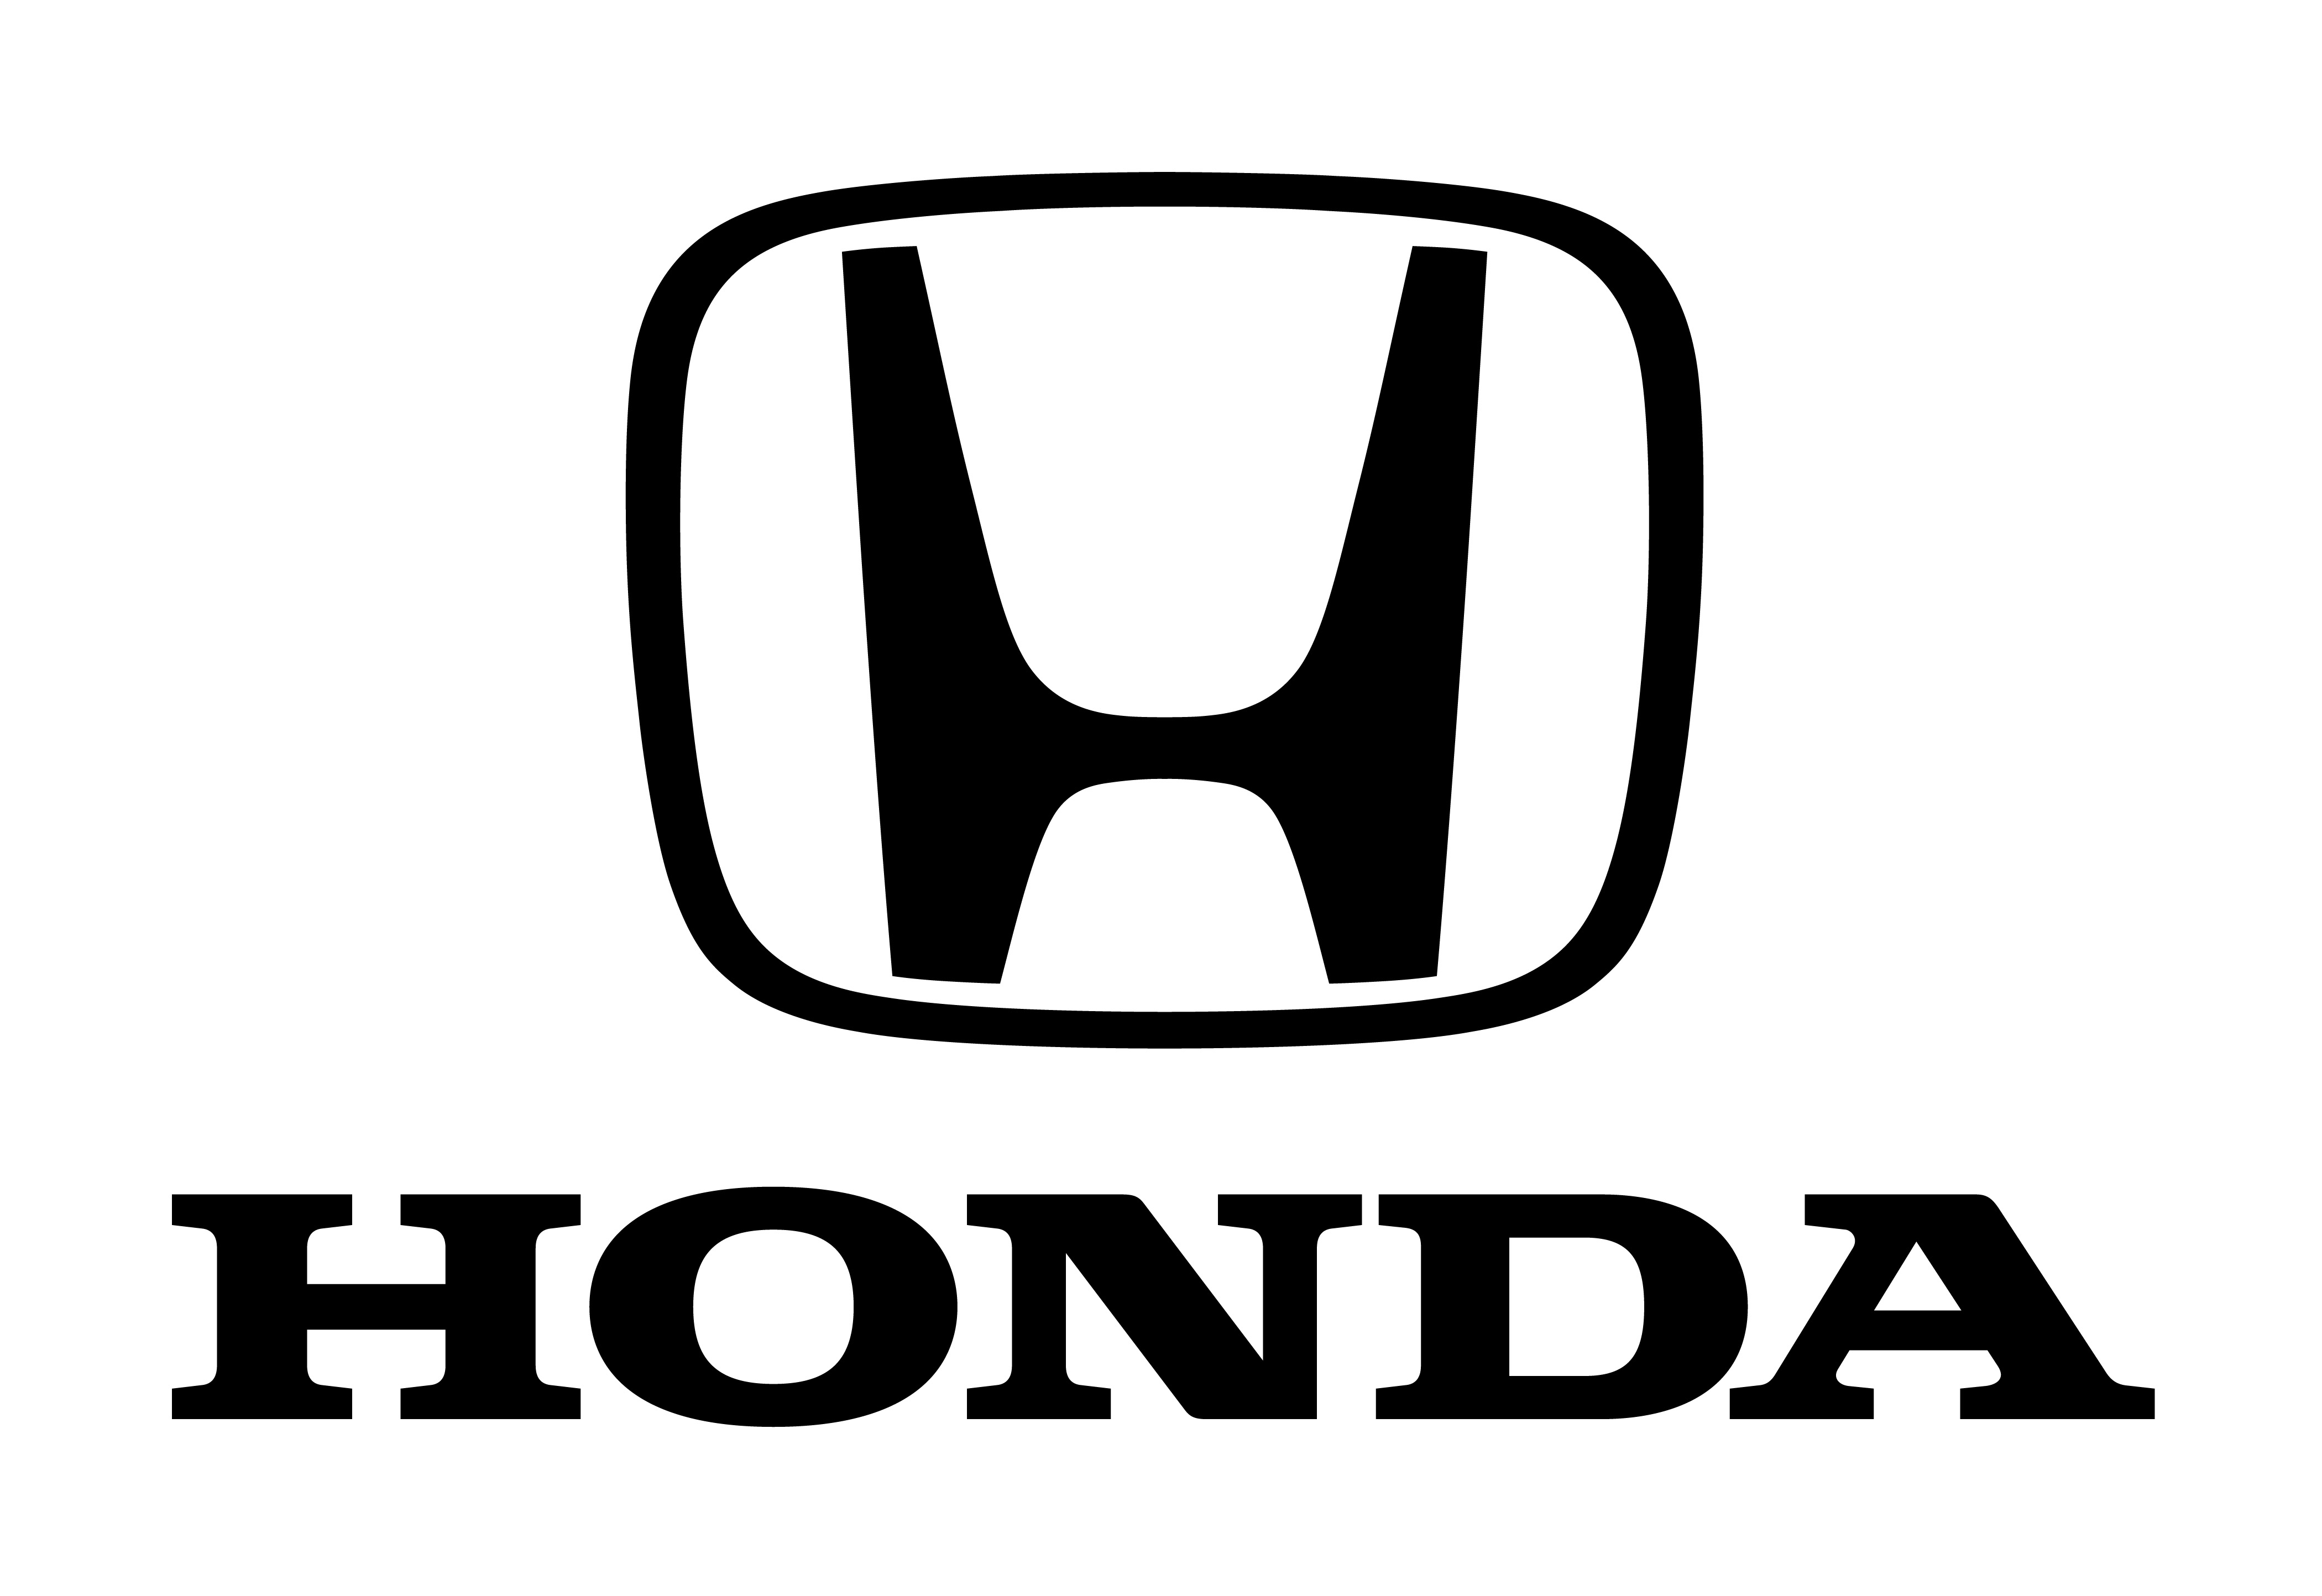 Honda Cr V Motor Diagrams in addition 7249 Envase Aceite Direccion Hidraulica besides Honda Clipart likewise Auto Racing Clip Images Auto Racing furthermore 22010 Biela. on honda cr z